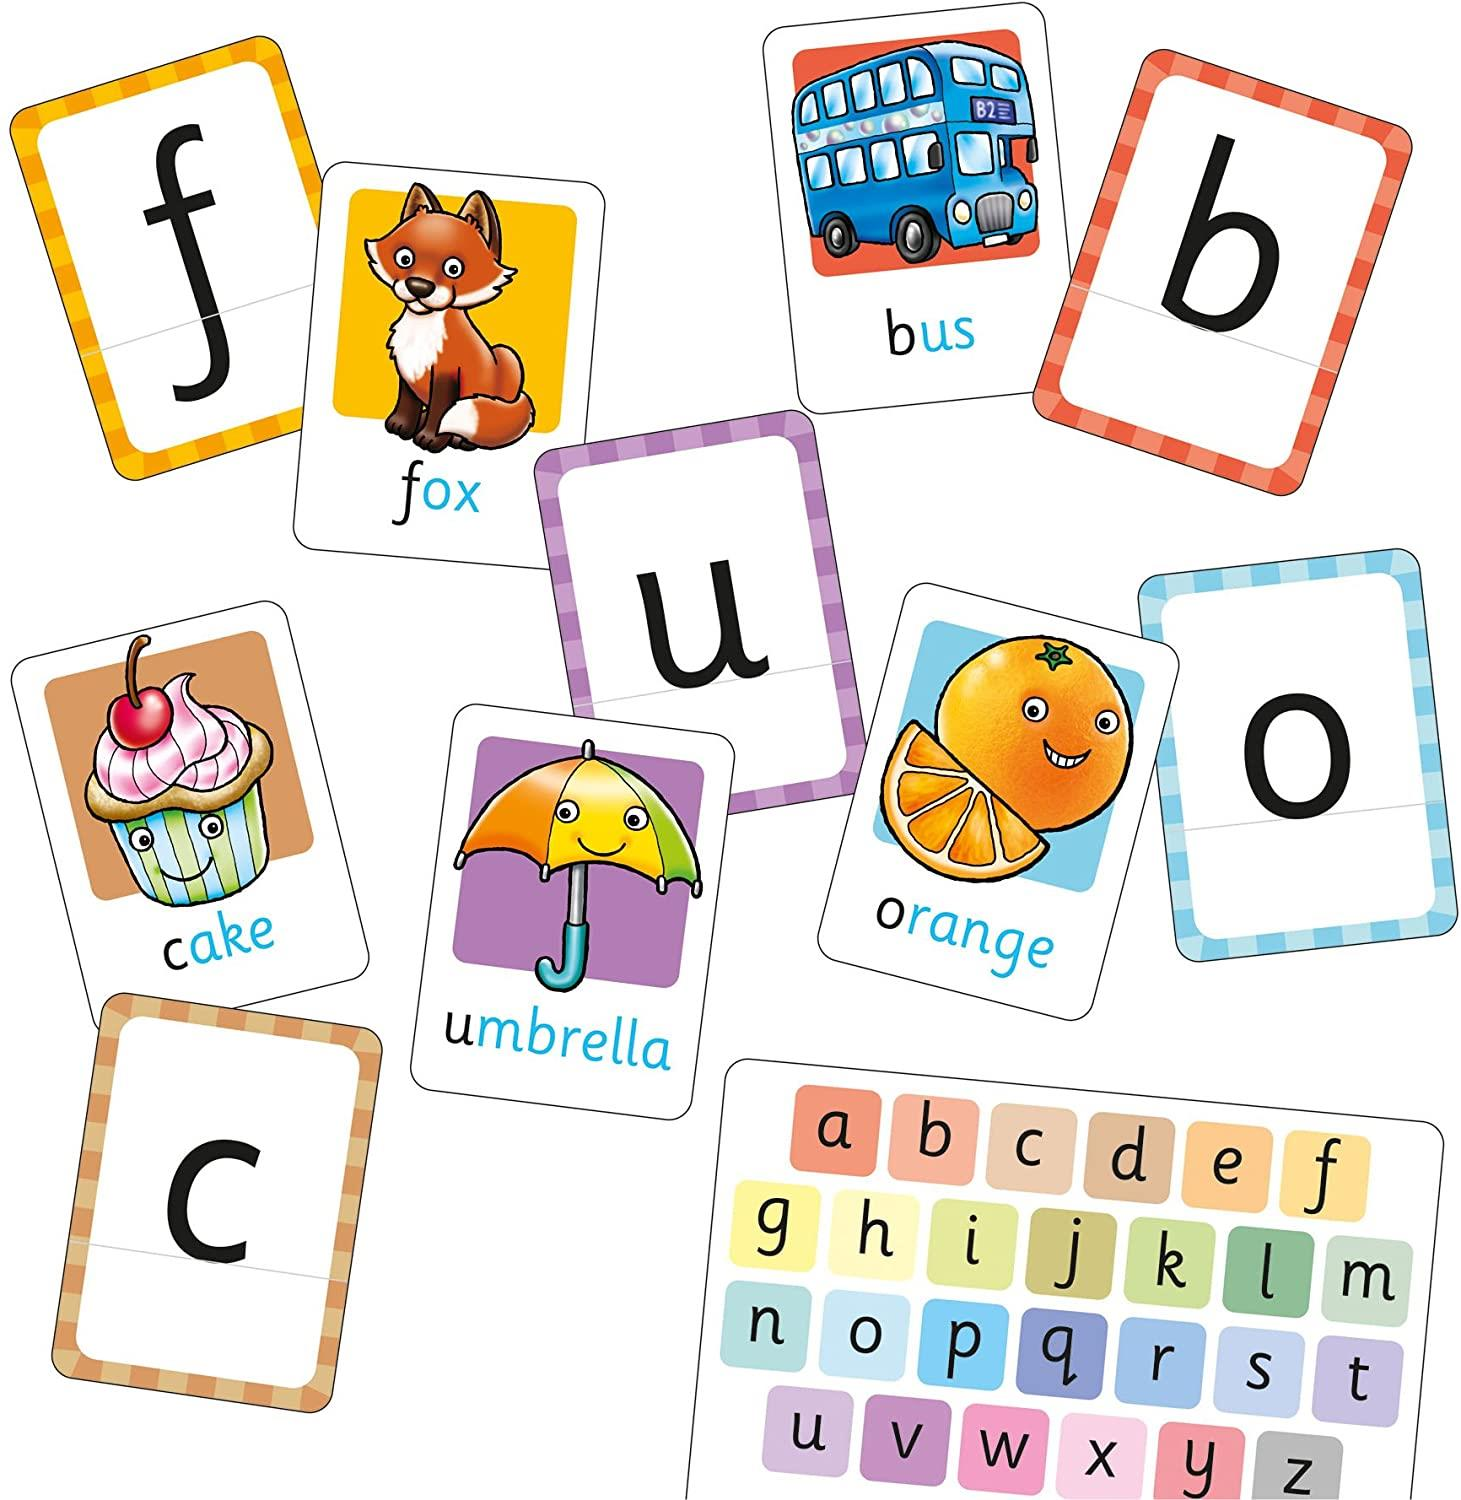 thumbnail 15 - Orchard Toys Educational Games For Kids Choose Game From Drop Down Menu